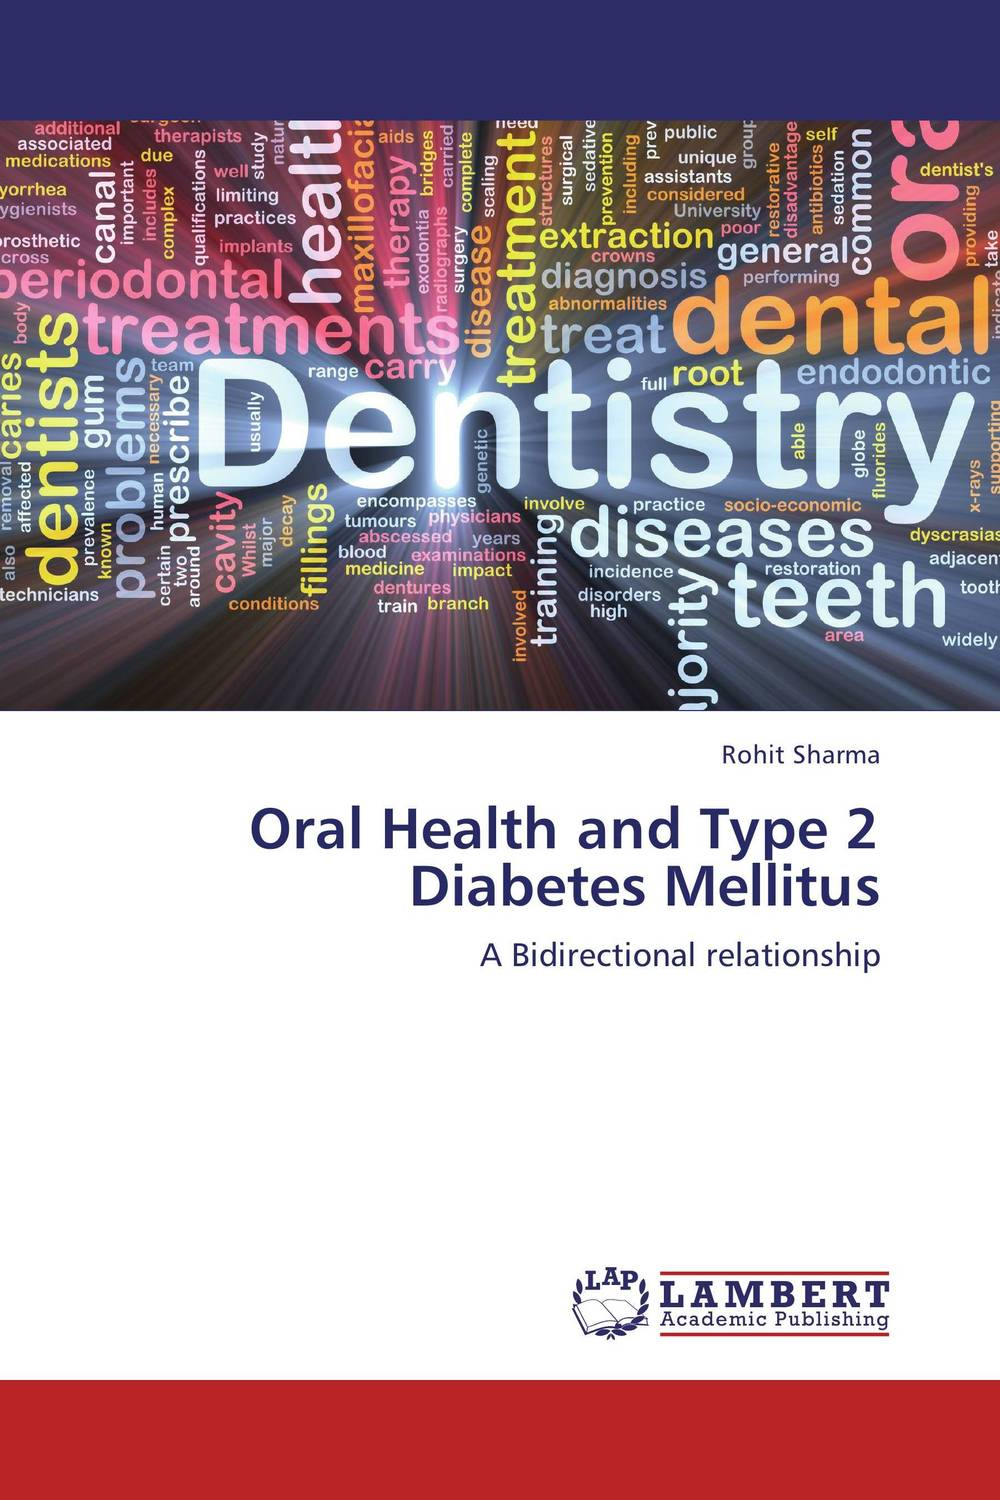 Oral Health and Type 2 Diabetes Mellitus peter lockhart b oral medicine and medically complex patients